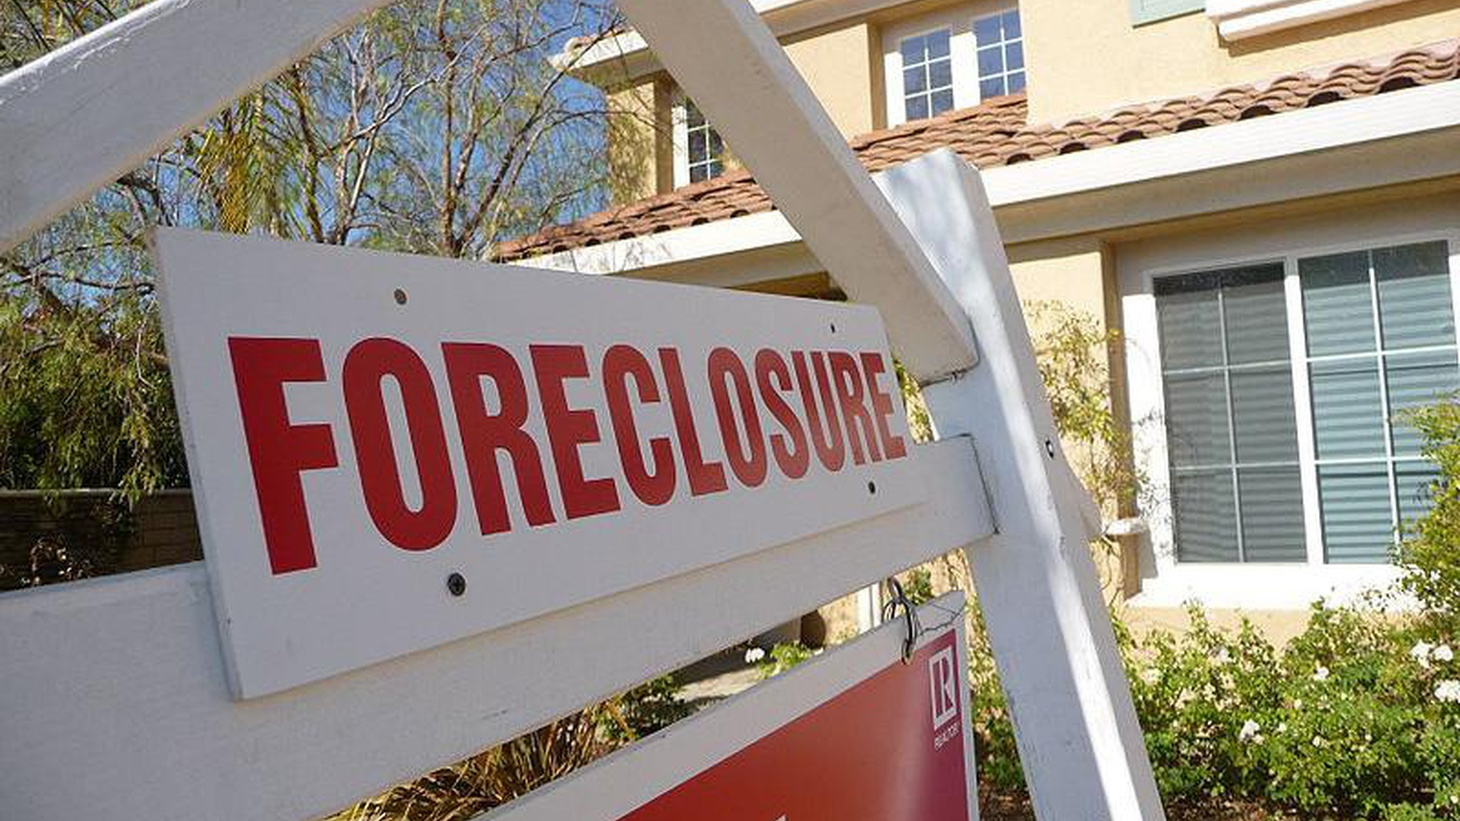 """Monte wants to seize mortgages that are """"underwater"""" and work out more affordable deals so people can stay in their homes. The financial industry threatens retaliation."""